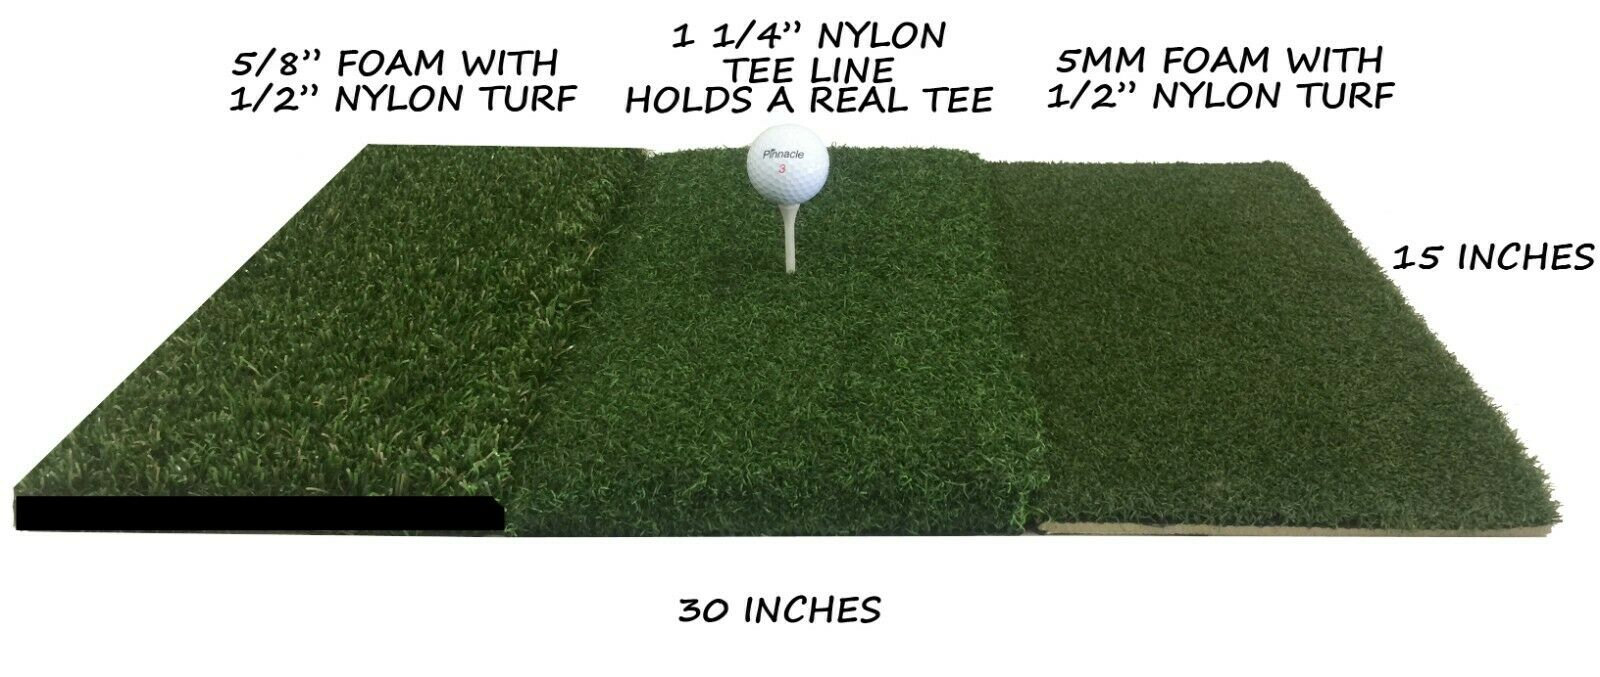 "15"" x 30"" Tri-Turf Golf Mat - Deluxe Golf Mats - The Golfing Eagles"